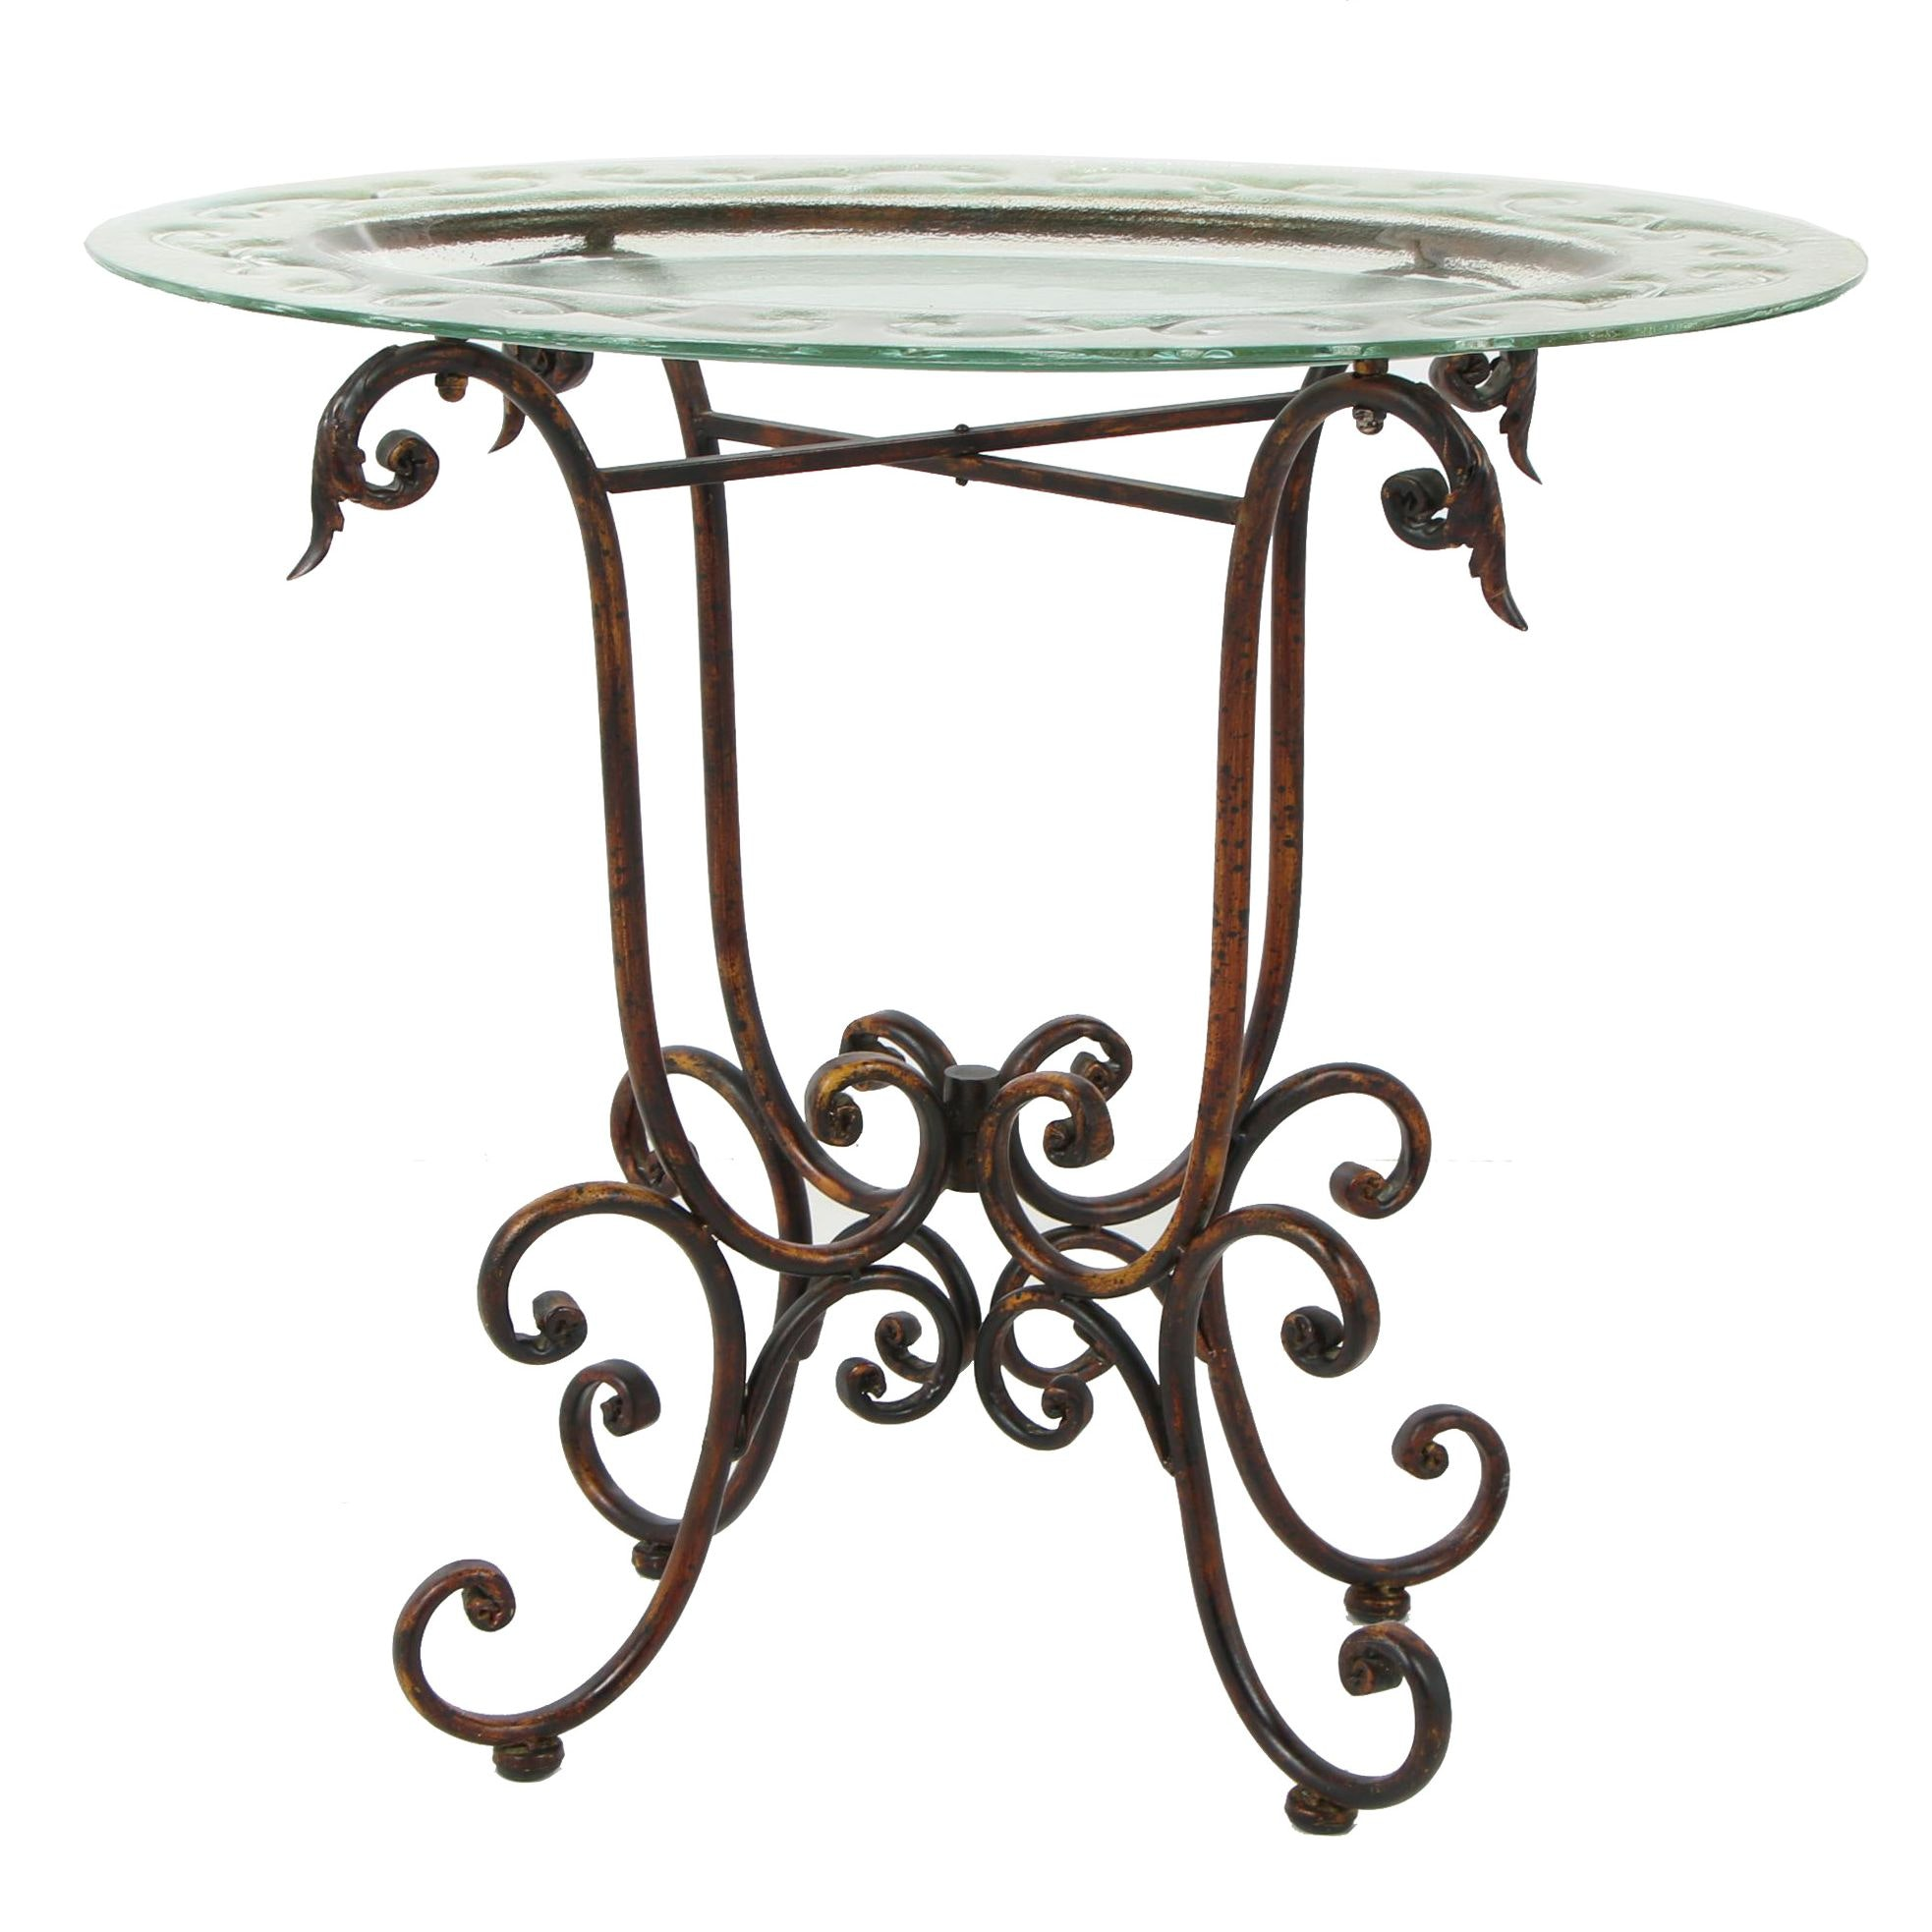 Contemporary Glass Top Accent Table with Wrought Metal Base